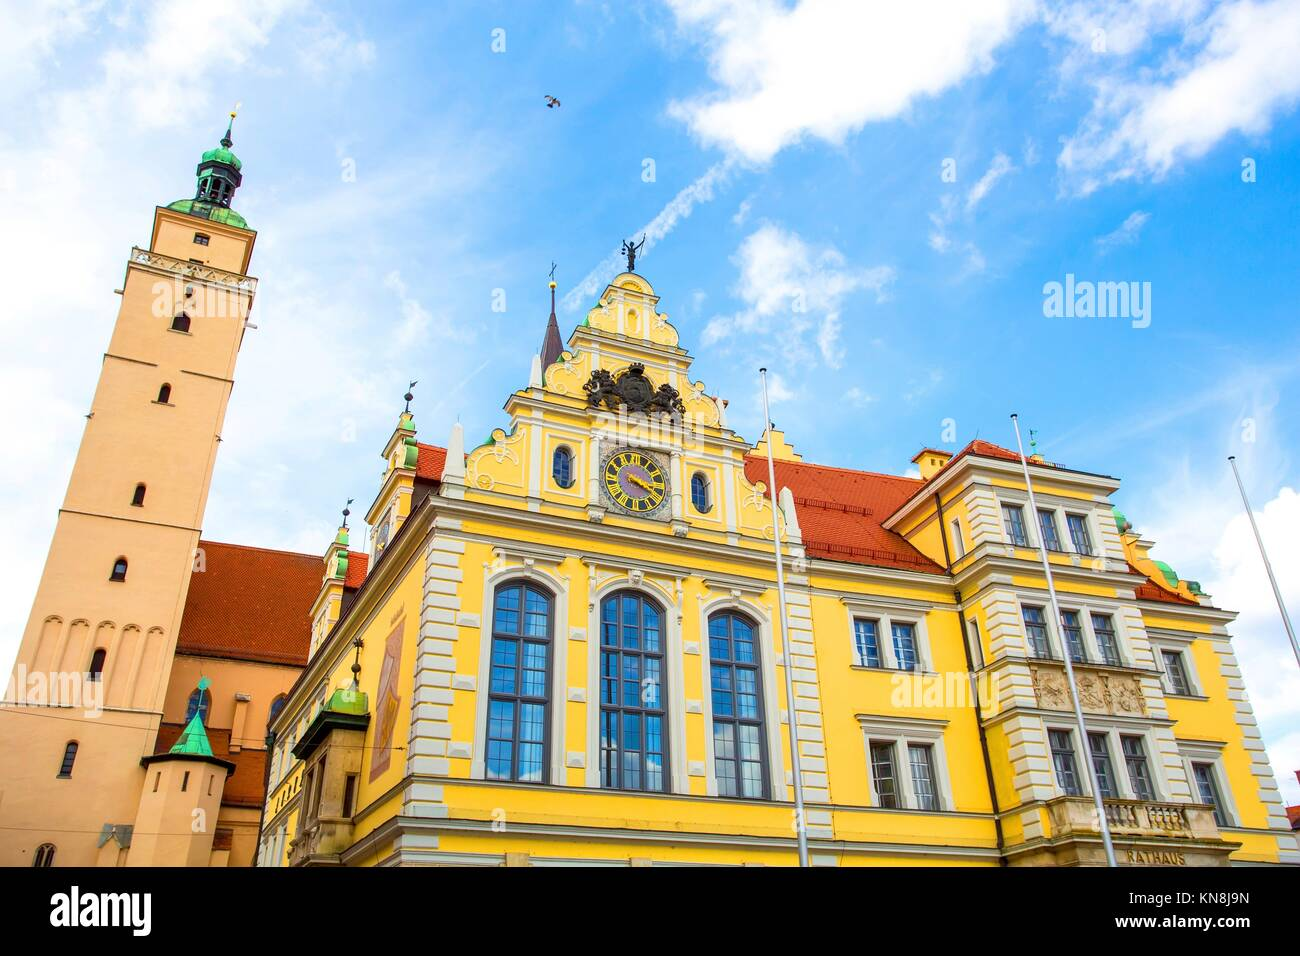 Historic Architecture in Ingolstadt, Bavaria, Germany.. Stock Photo